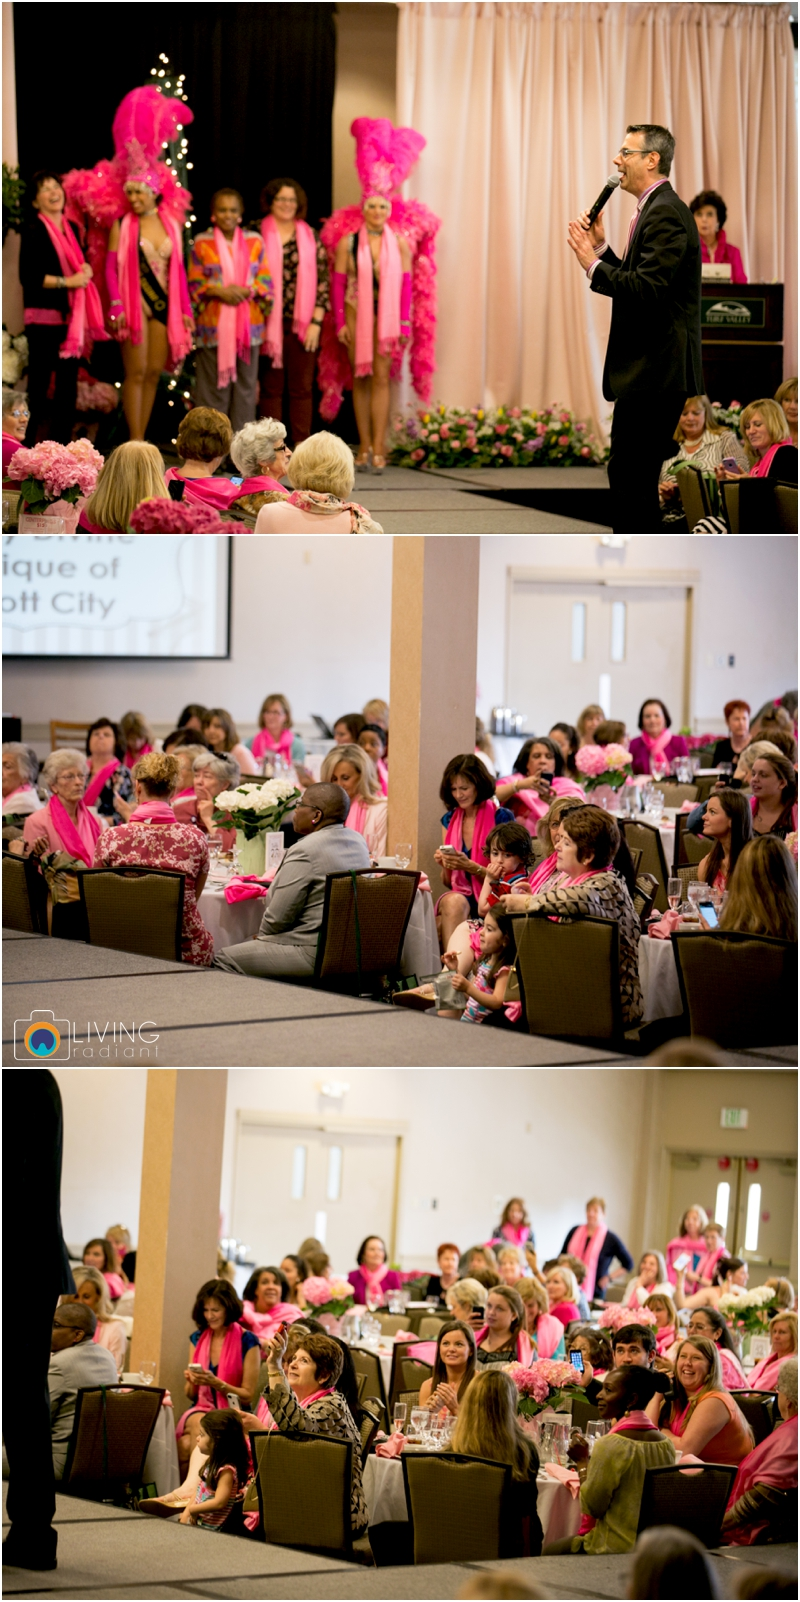 turf-valley-conference-resort-center-blossoms-of-hope-pretty-in-pink-2015-living-radiant-photography-maggie-nolan-patrick-nolan_0104.jpg